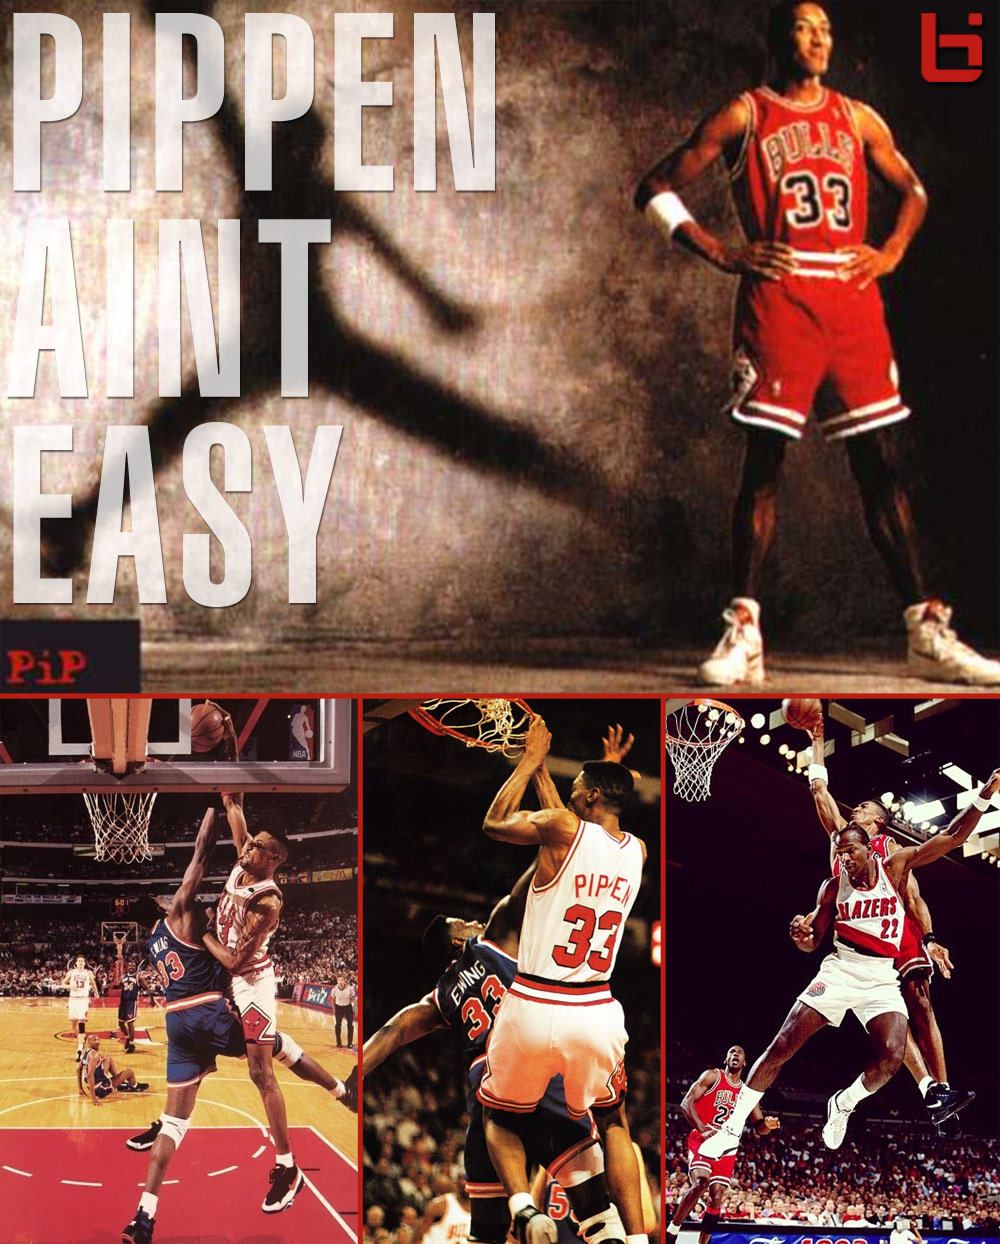 BIL-HAPPYBDAY-PIPPEN